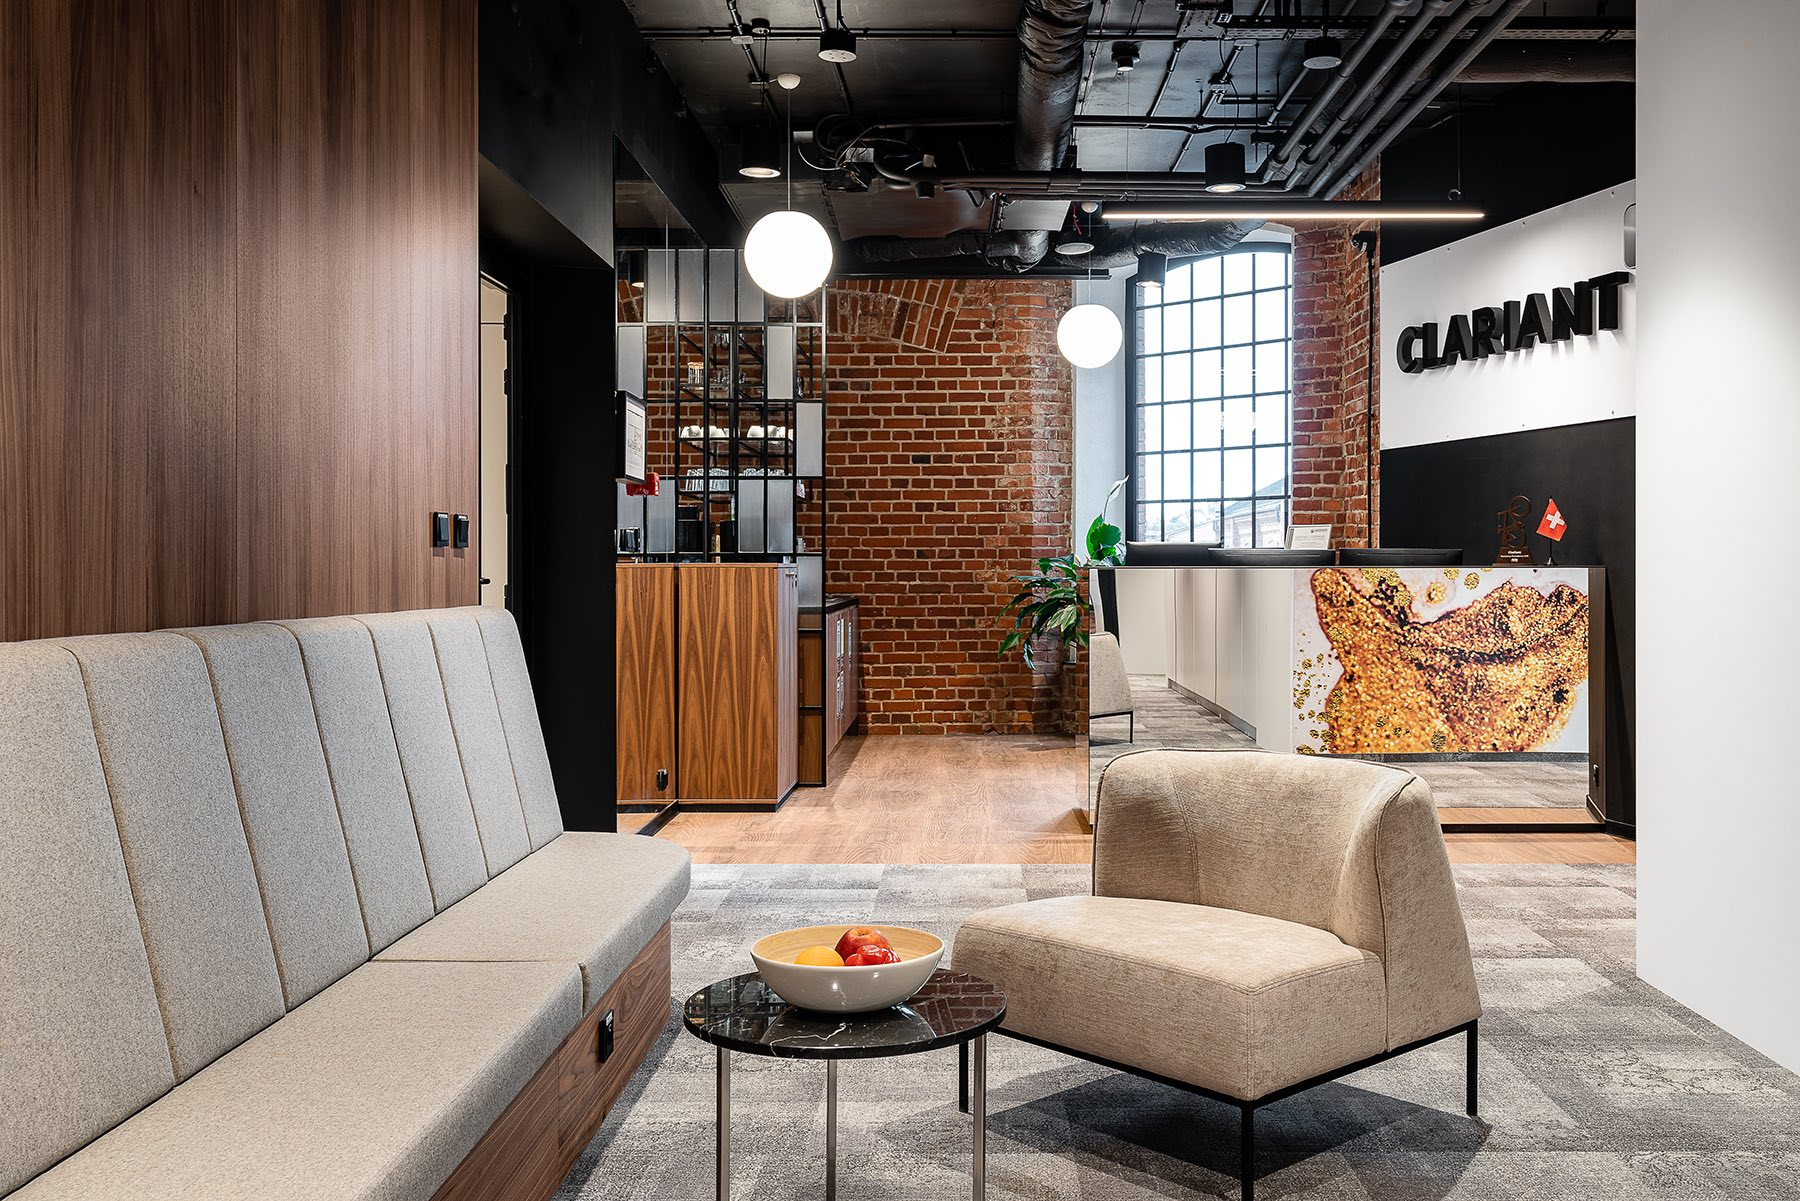 A Look Inside Clariant's New Lodz Office